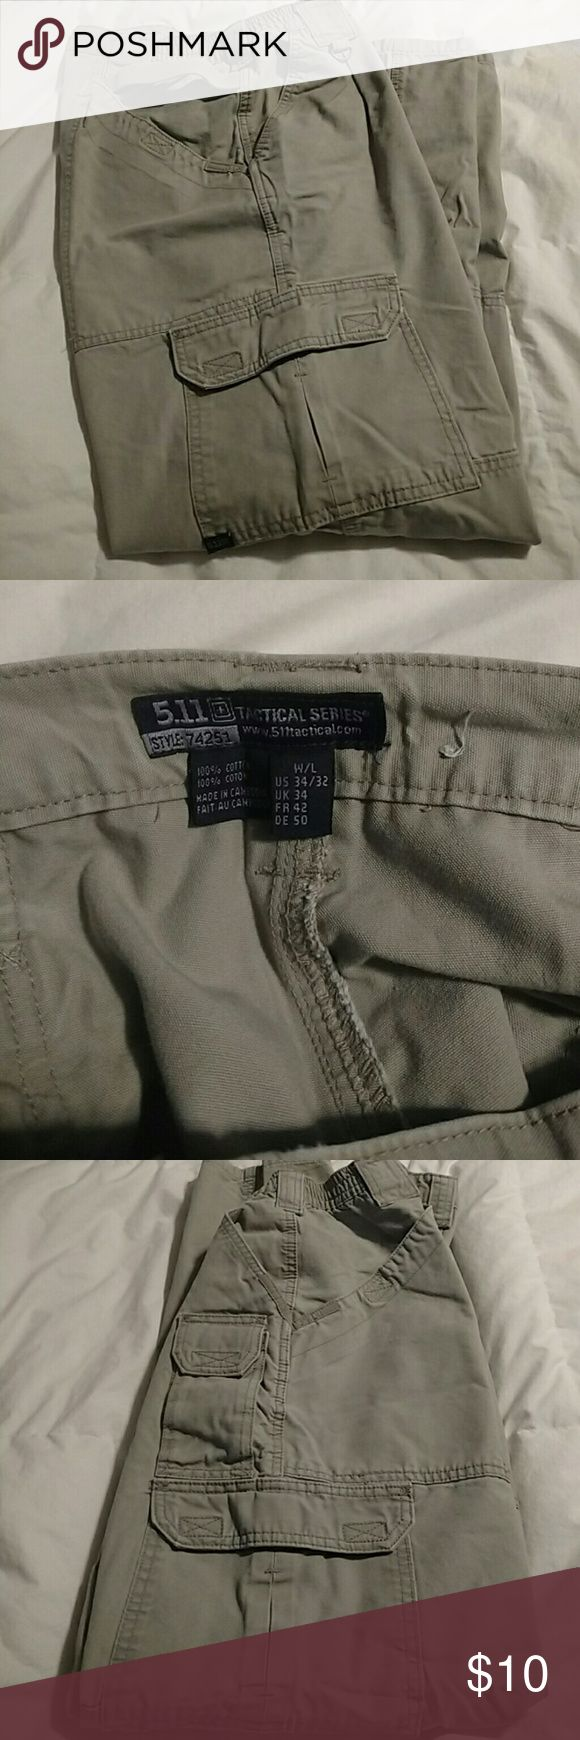 Men's 511 Tactical series Khaki pants These khakis are in good used condition.  Slightly faded, but all Velcro still has good sticking power and the zipper works.  Size 34/32. 5.11 Tactical Pants Cargo